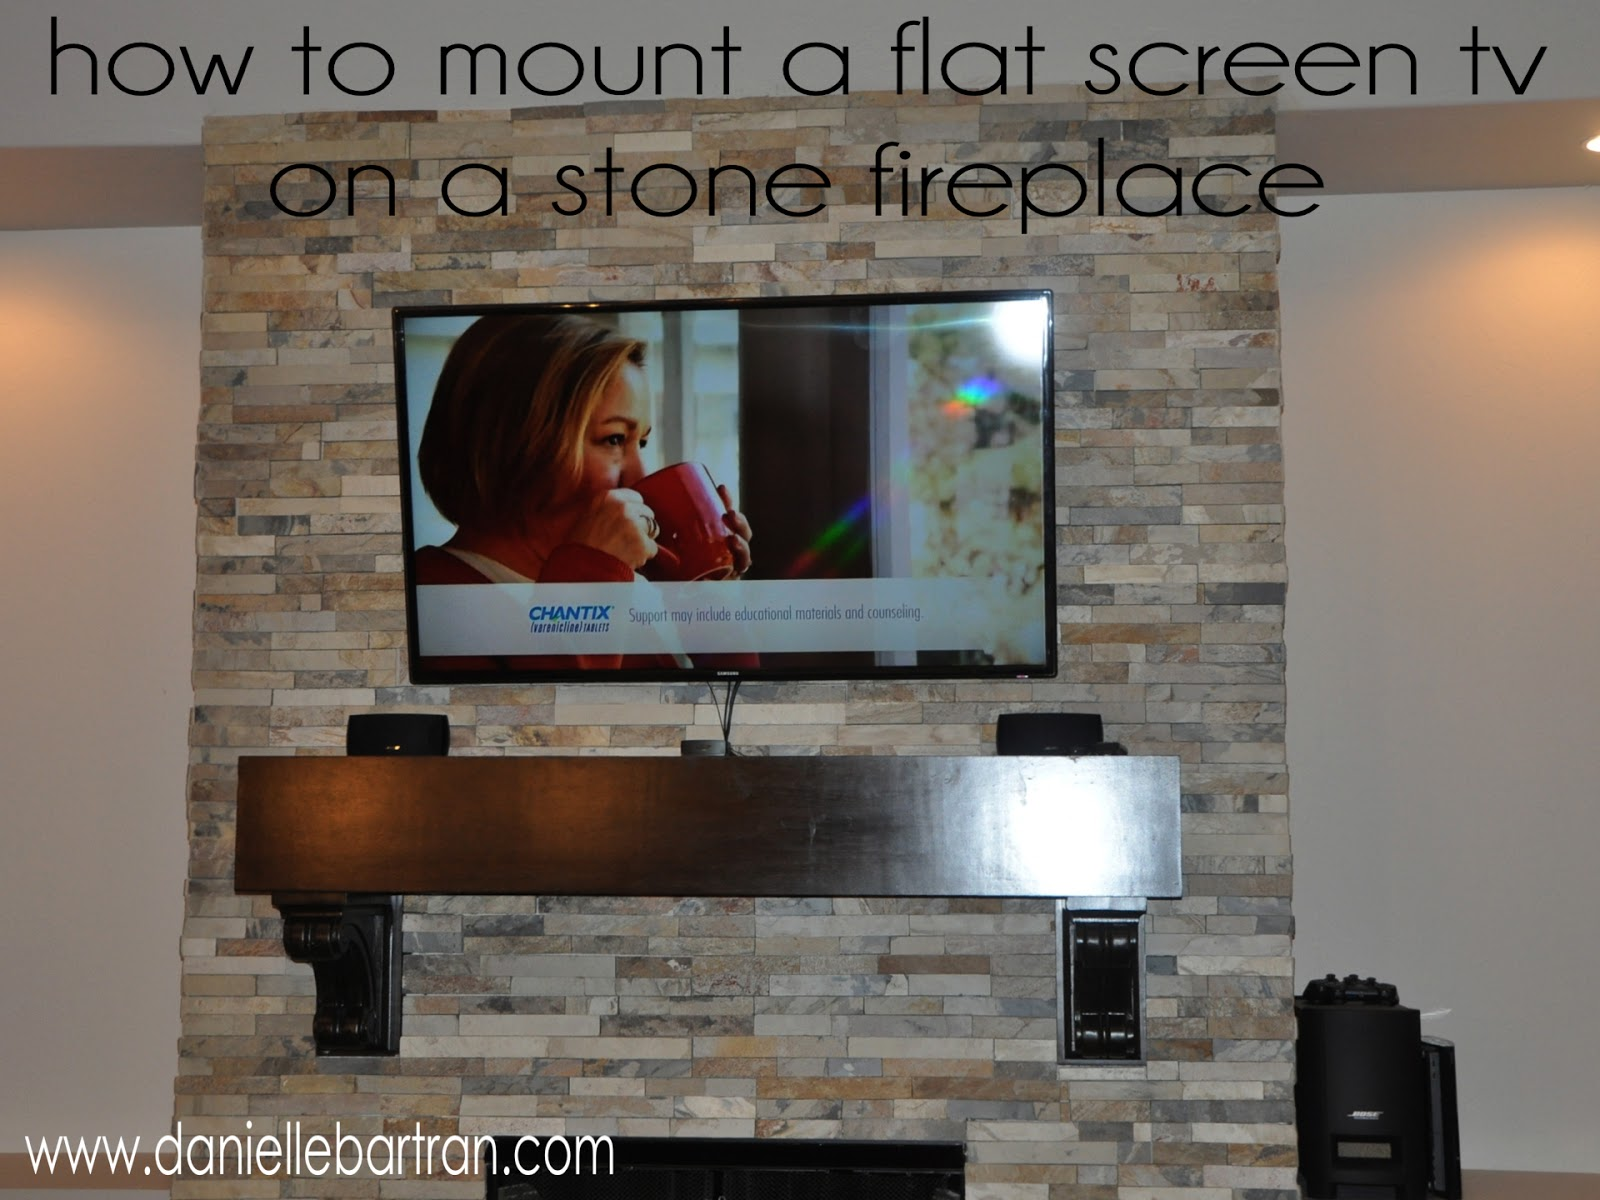 How To Mount A Flat Screen TV On A STONE Fireplace {diy}